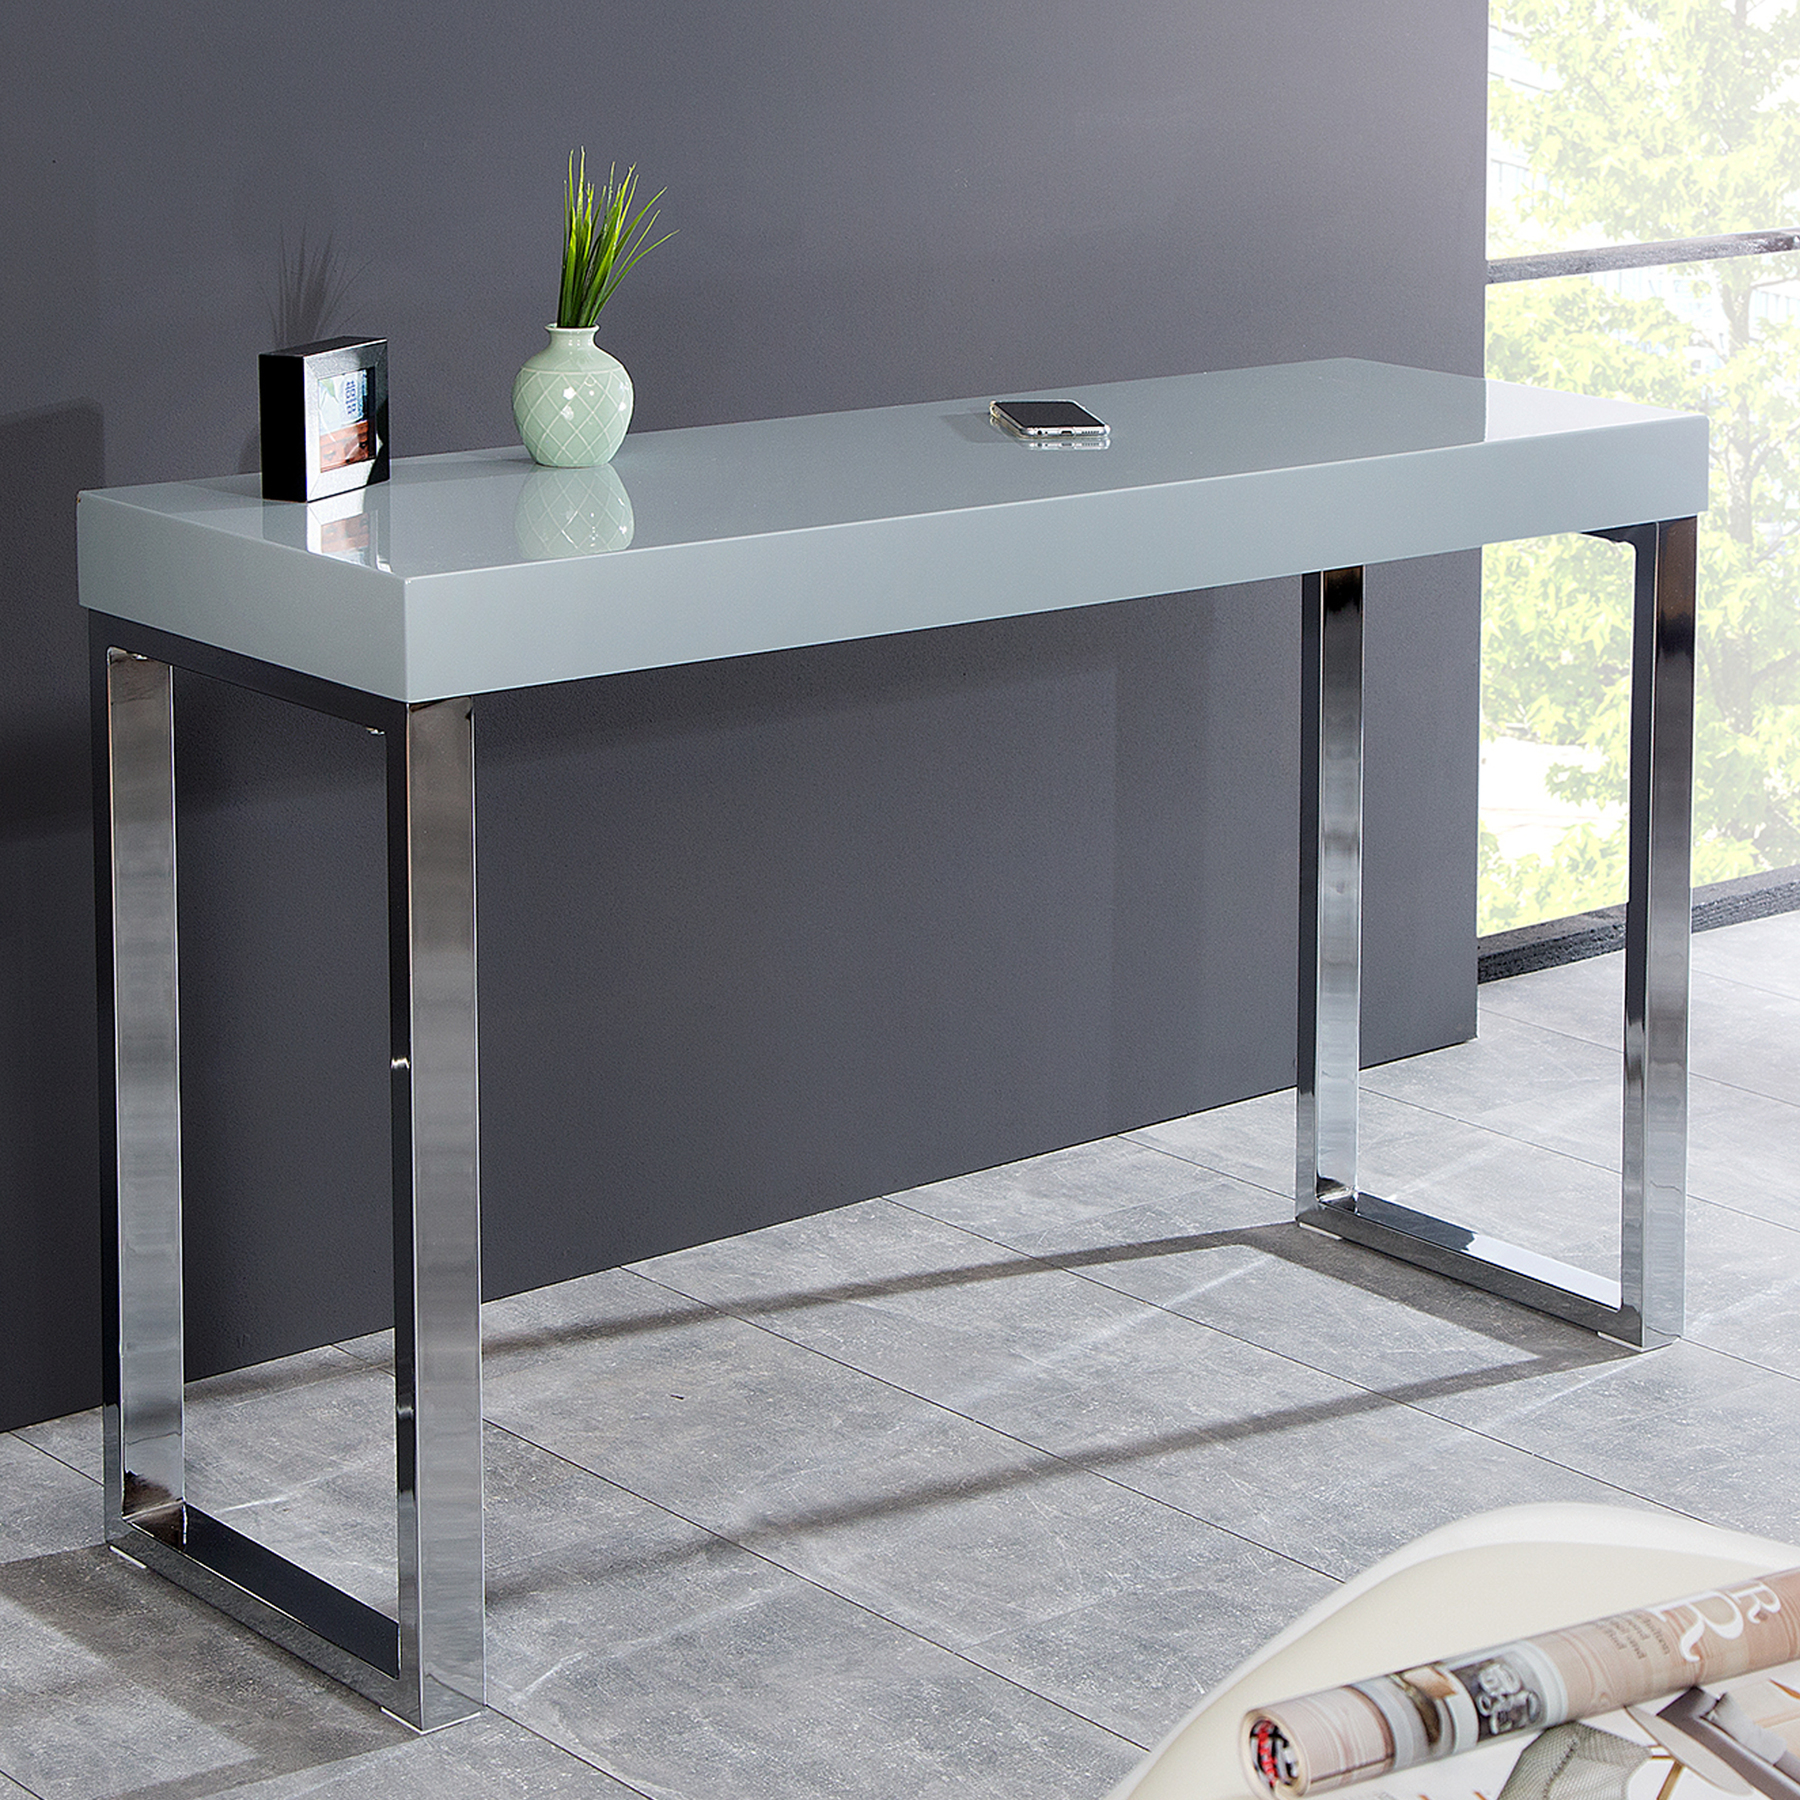 Design laptoptisch grey desk 120cm hochglanz grau ebay for Design laptoptisch